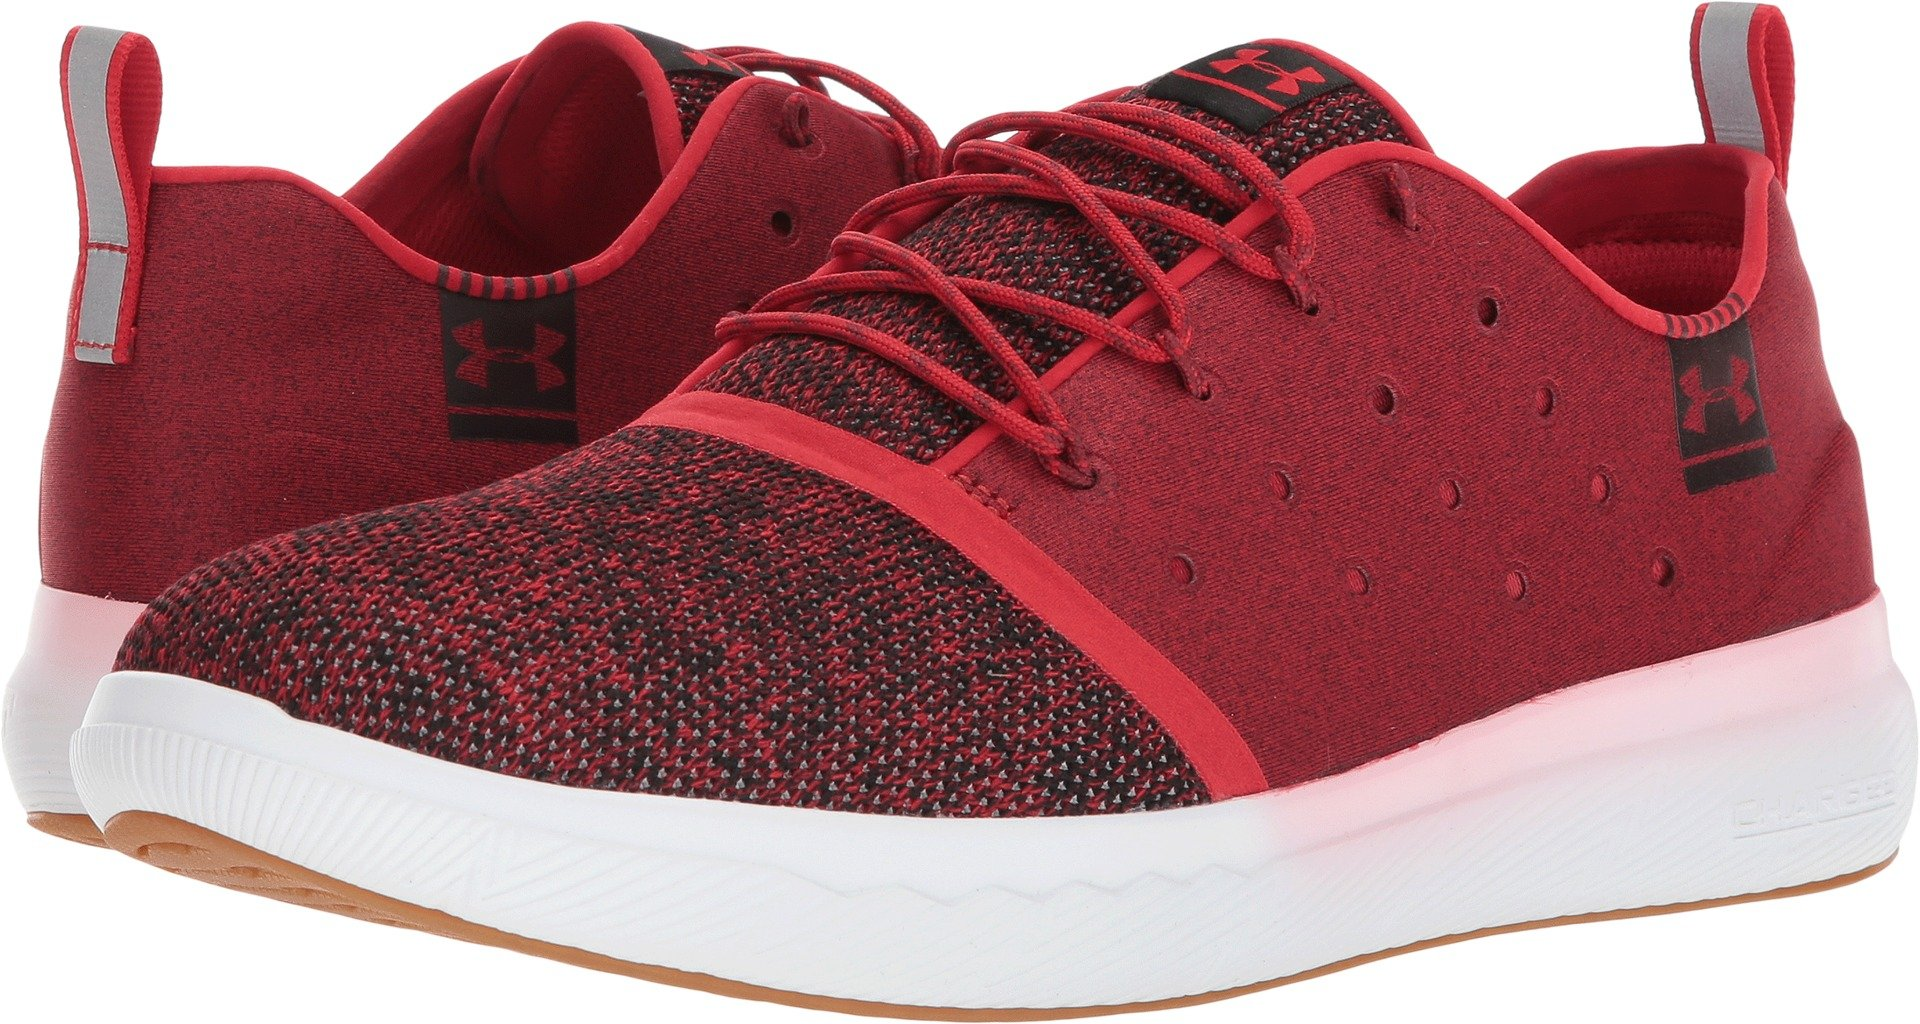 Under Armour Men's UA Charged 24/7 Low Red/White/Red 9.5 D US